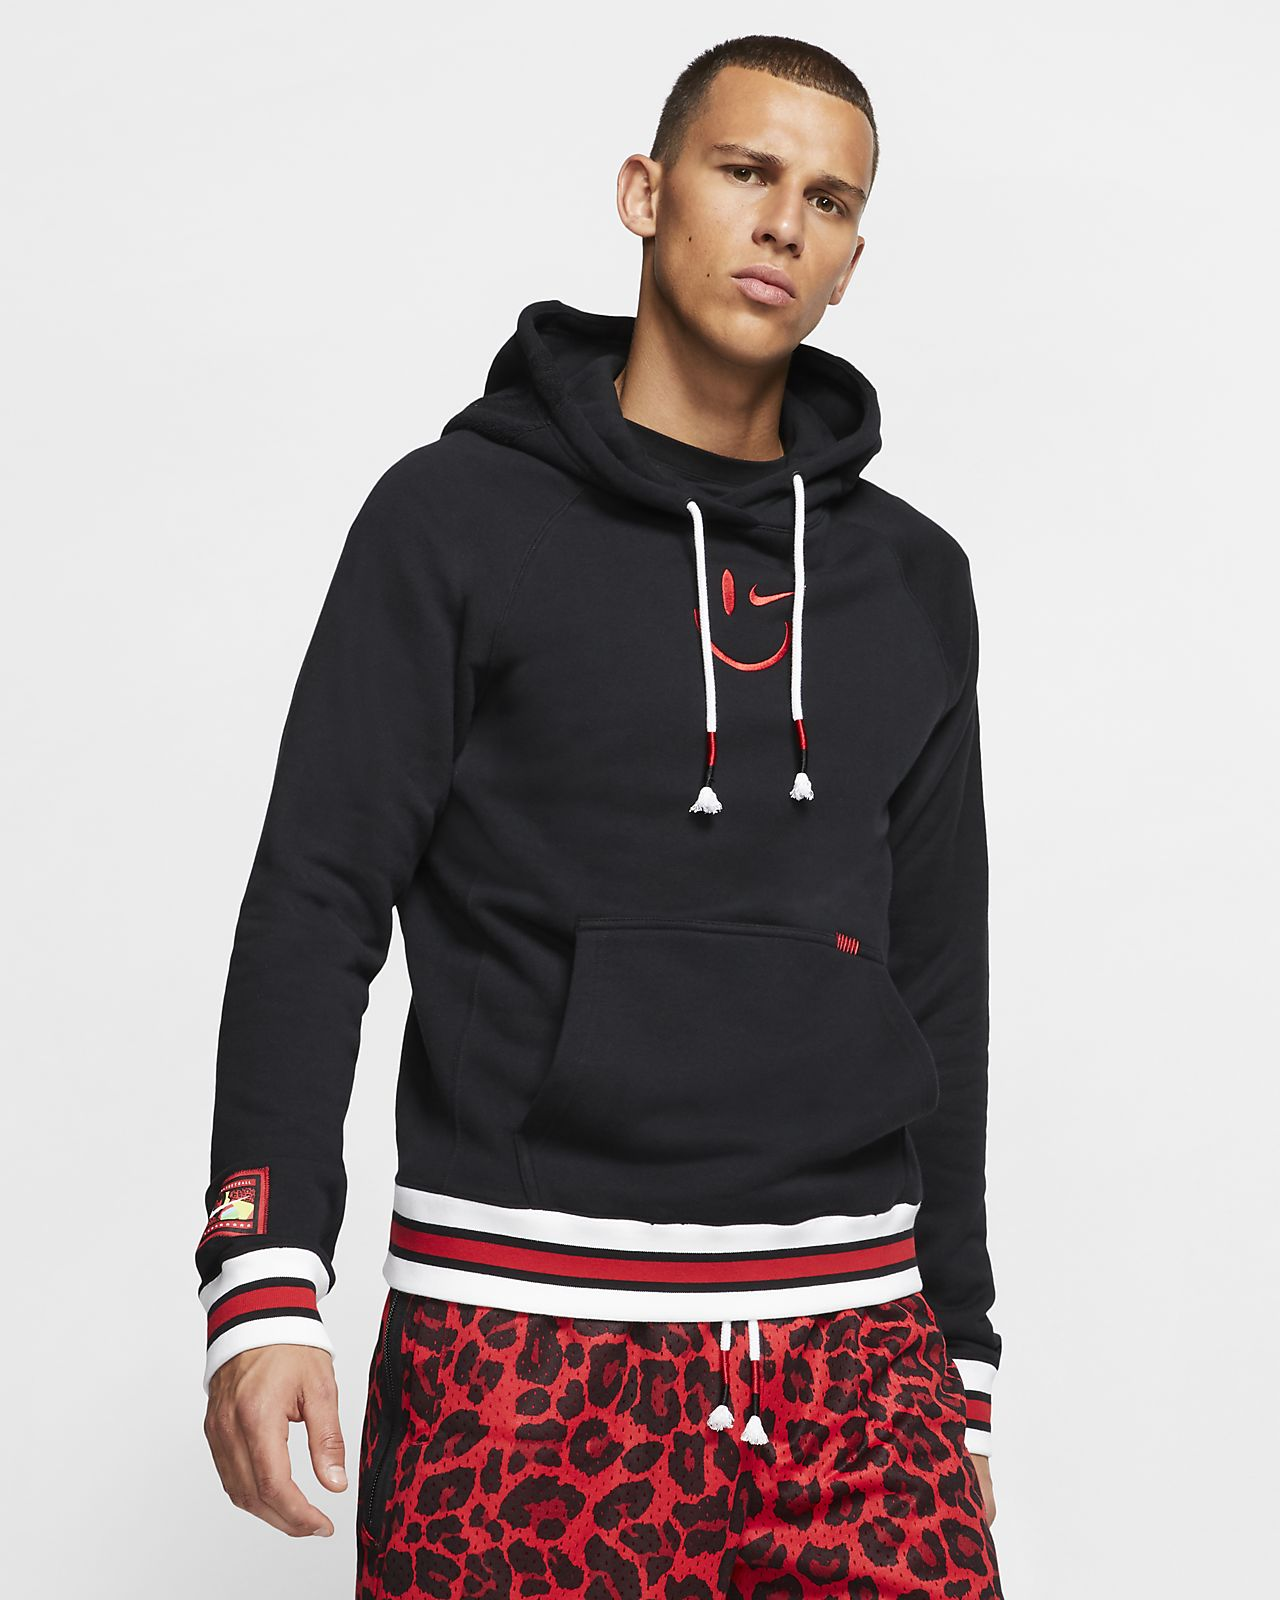 Sweat à capuche de basketball Nike pour Homme